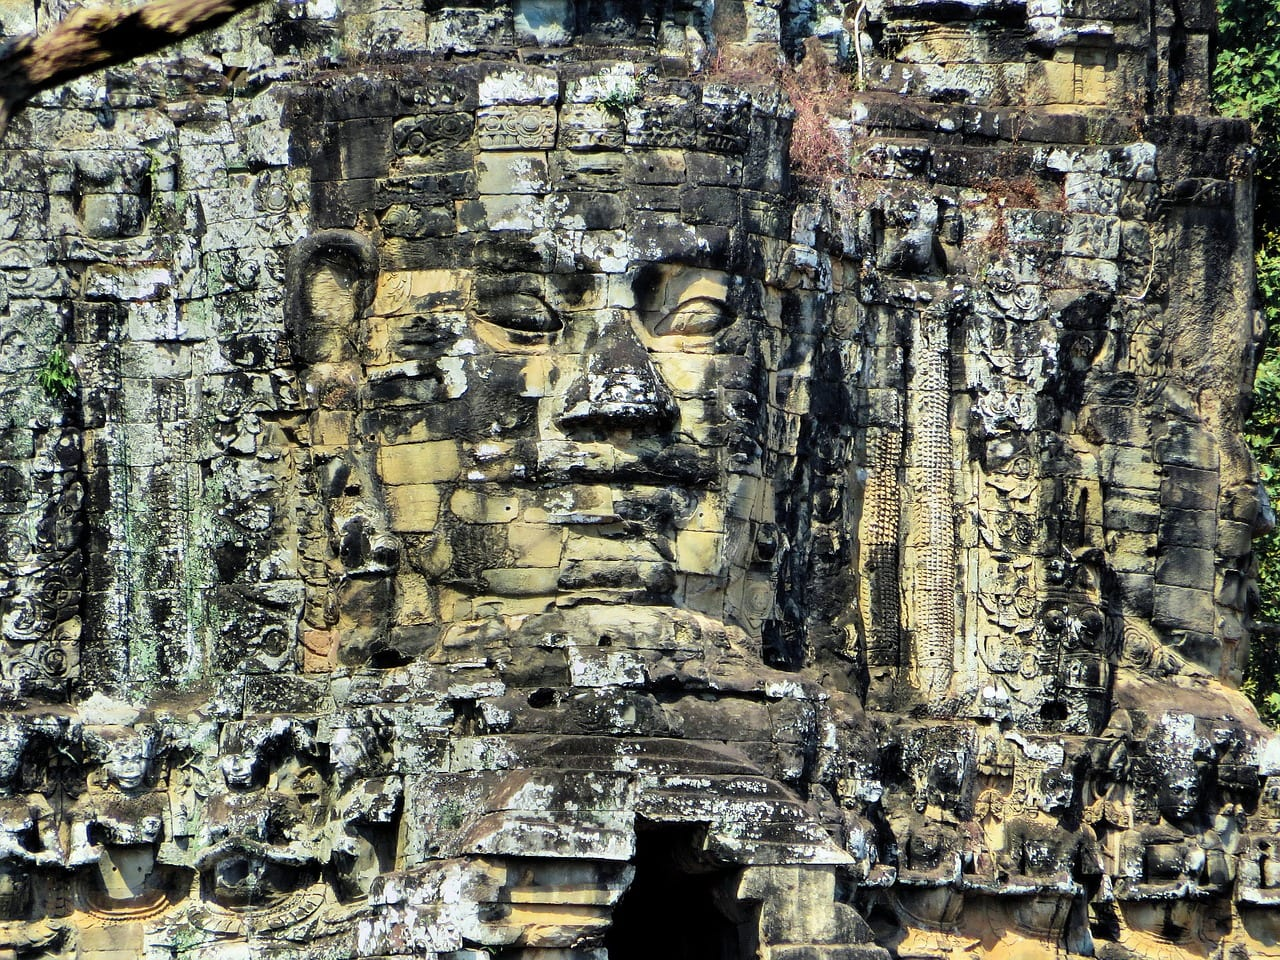 Angkor Cycling Tour: Three days of temples by bicycle (self-guided)